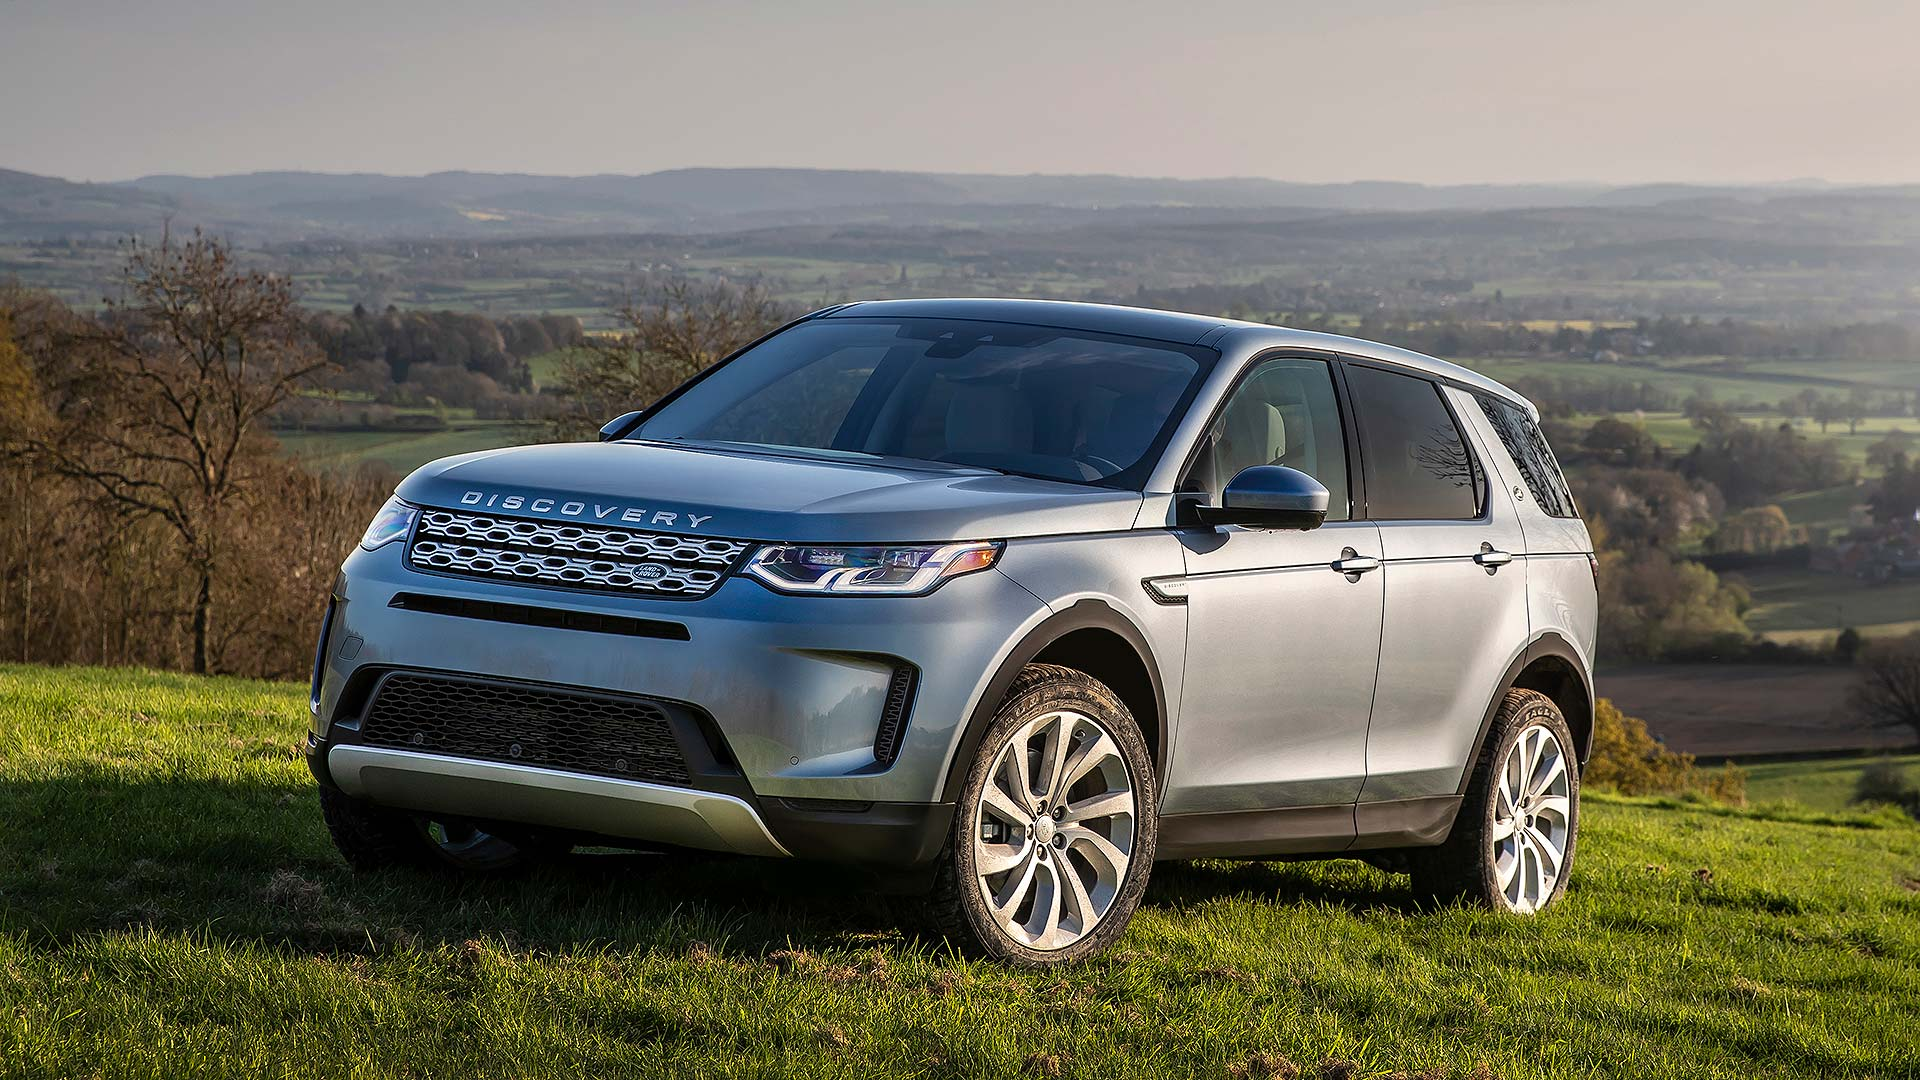 2020 Land Rover Discovery Sport Revealed Far More Than A Facelift Motoring Research